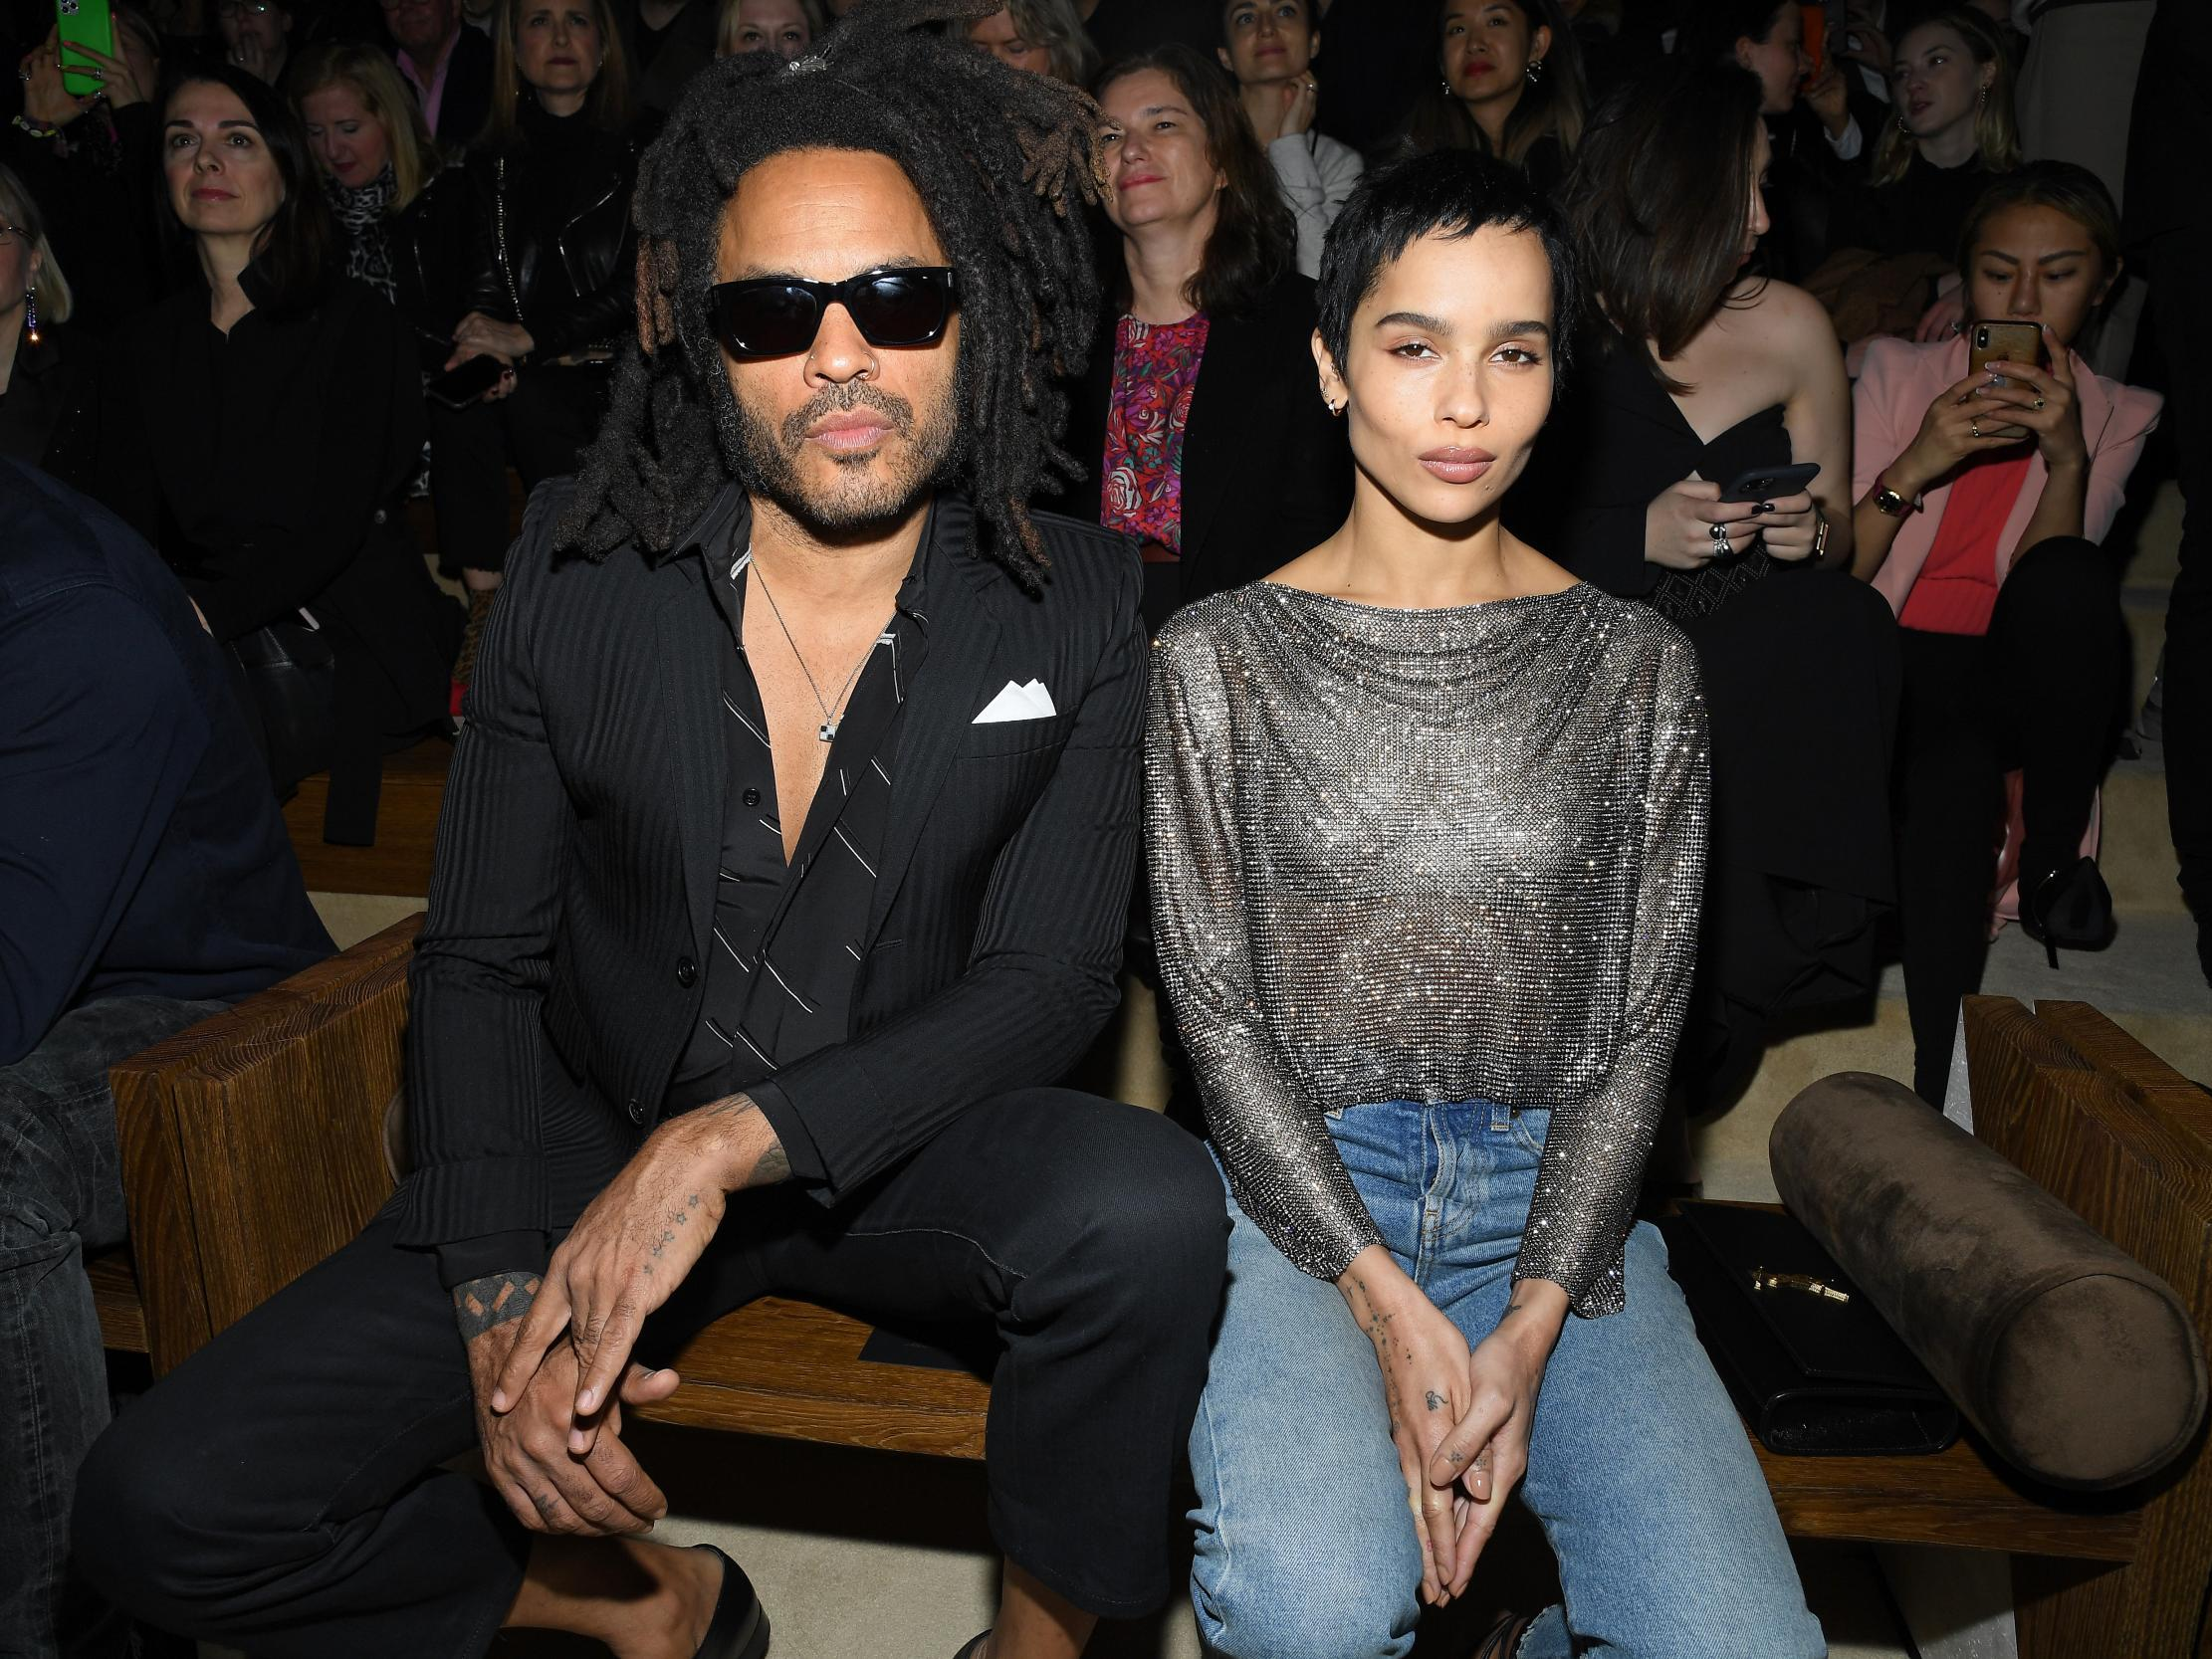 Paris Fashion Week: Zoe and Lenny Kravitz have father-daughter moment on frow